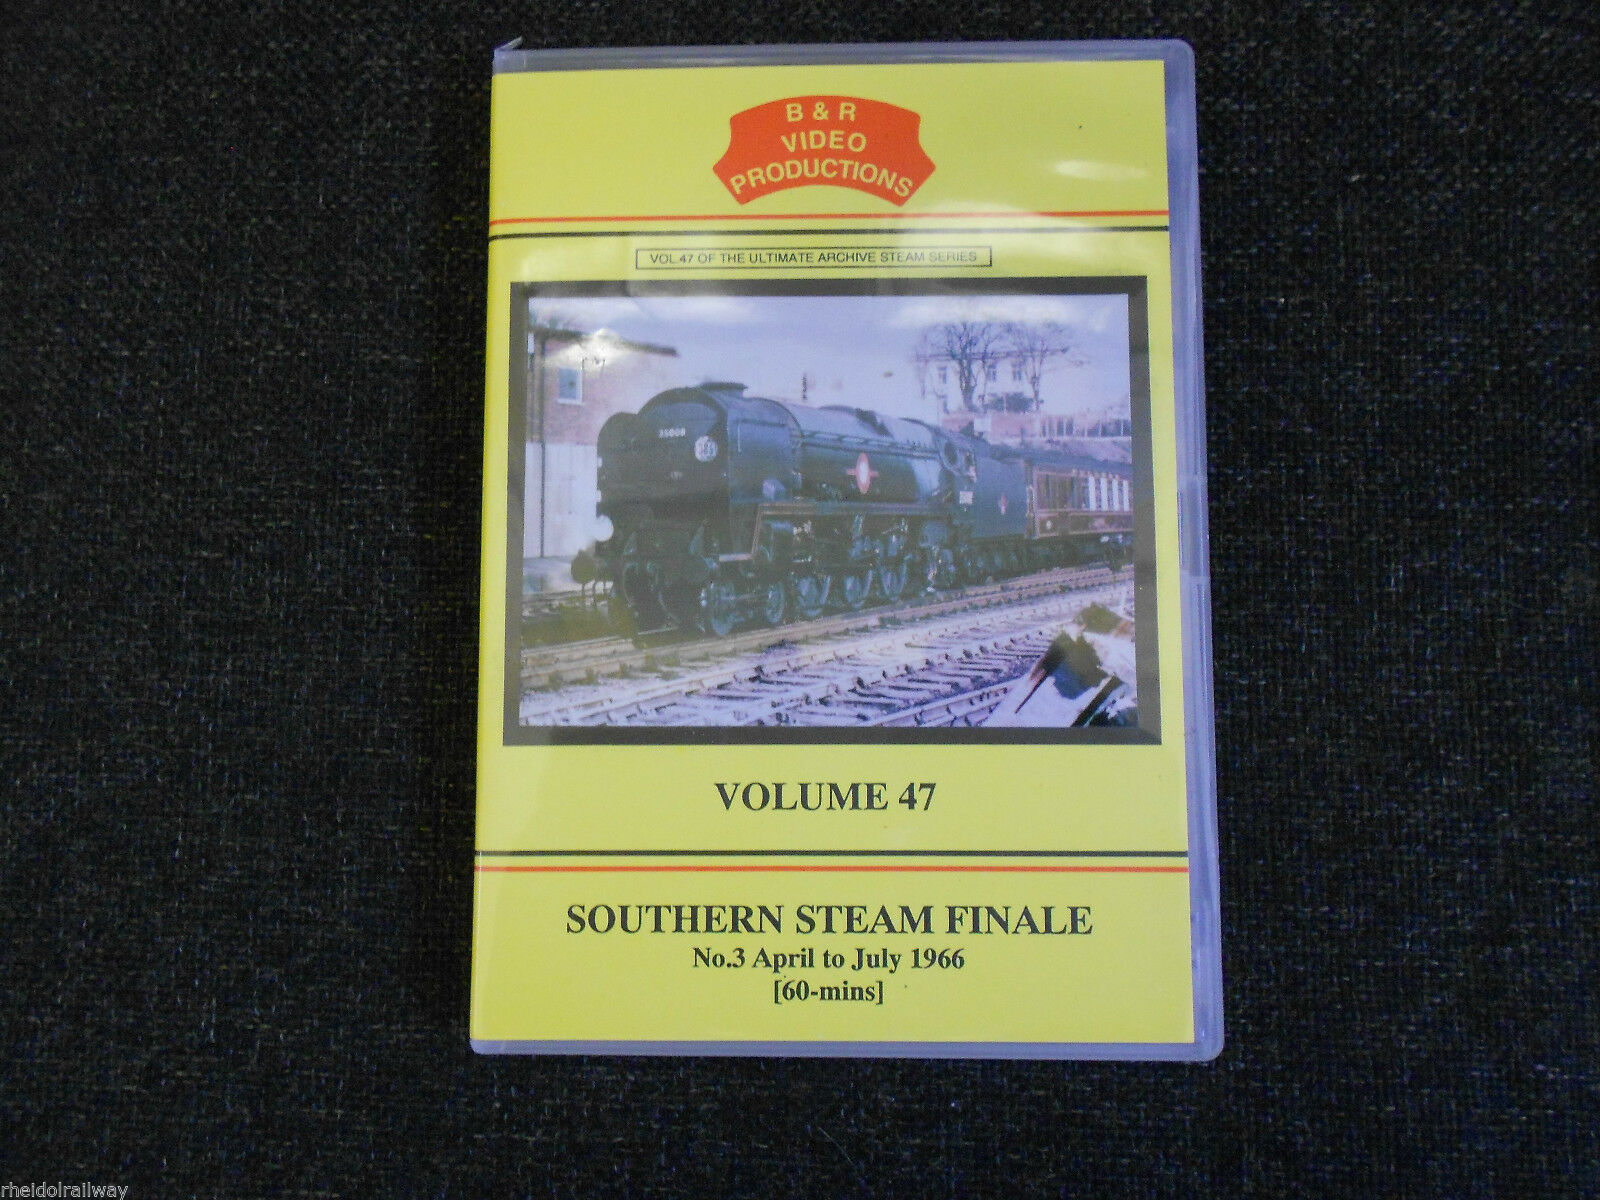 Longmoor, Weymouth, Ventnor, Ryde, Southern Steam Finale Part 3, B&R Vol 47 DVD